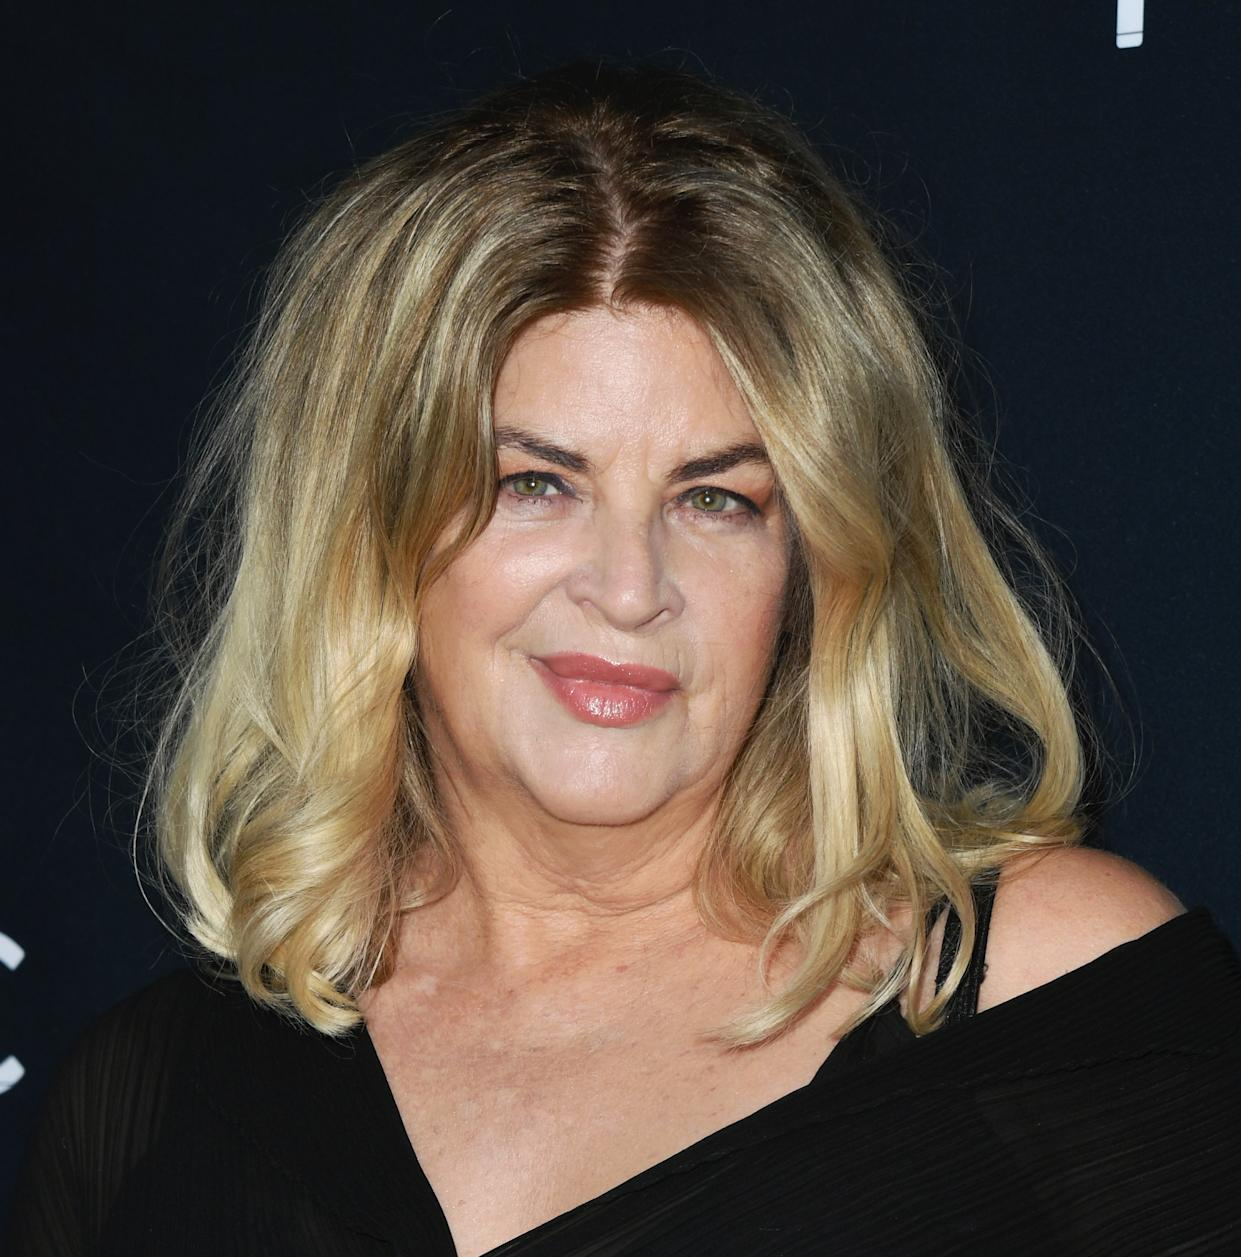 """HOLLYWOOD, CALIFORNIA - AUGUST 22:  Kirstie Alley attends the Premiere Of Quiver Distribution's """"The Fanatic"""" at the Egyptian Theatre on August 22, 2019 in Hollywood, California. (Photo by Jon Kopaloff/FilmMagic)"""